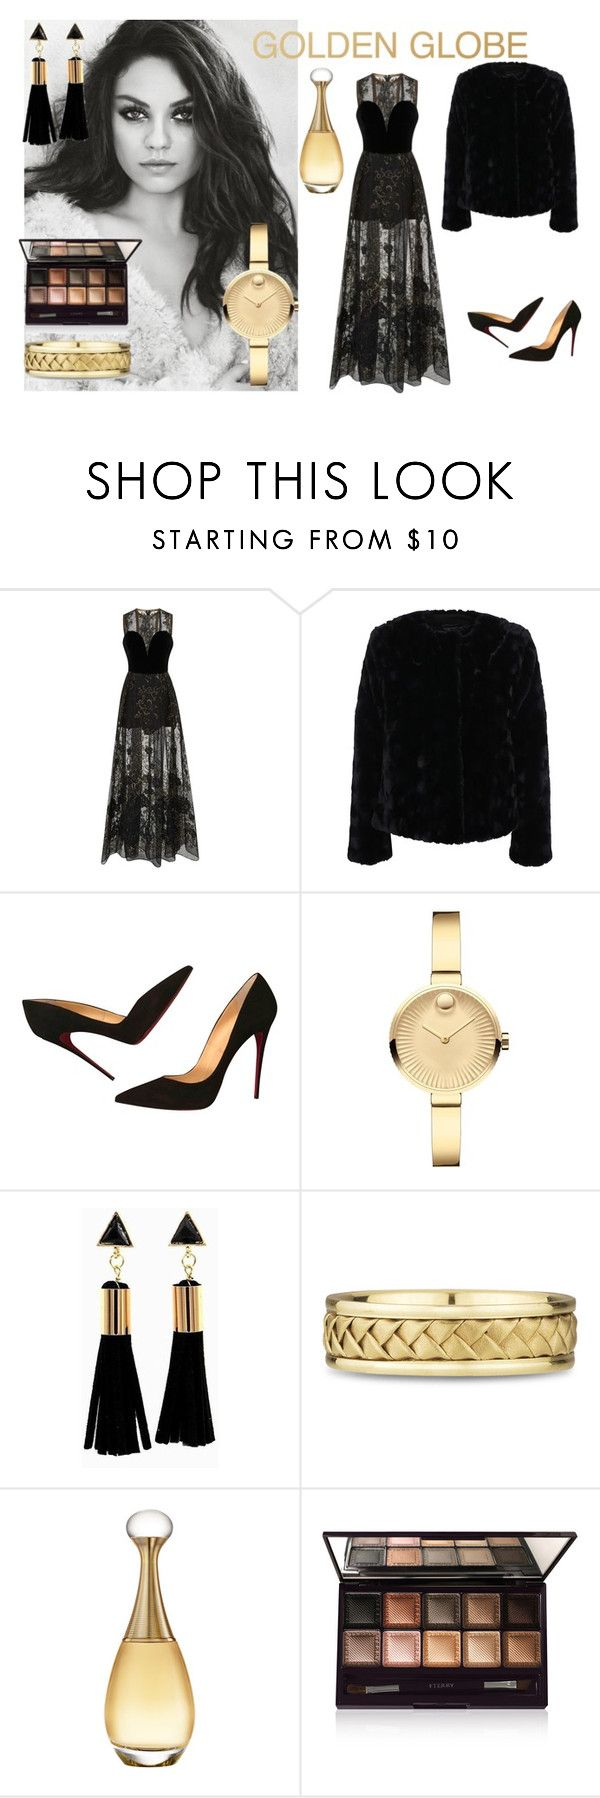 """#goldenglobes"" by hajer-bh ❤ liked on Polyvore featuring Elie Saab, Filippa K, Christian Louboutin, Movado, Christian Dior and By Terry"